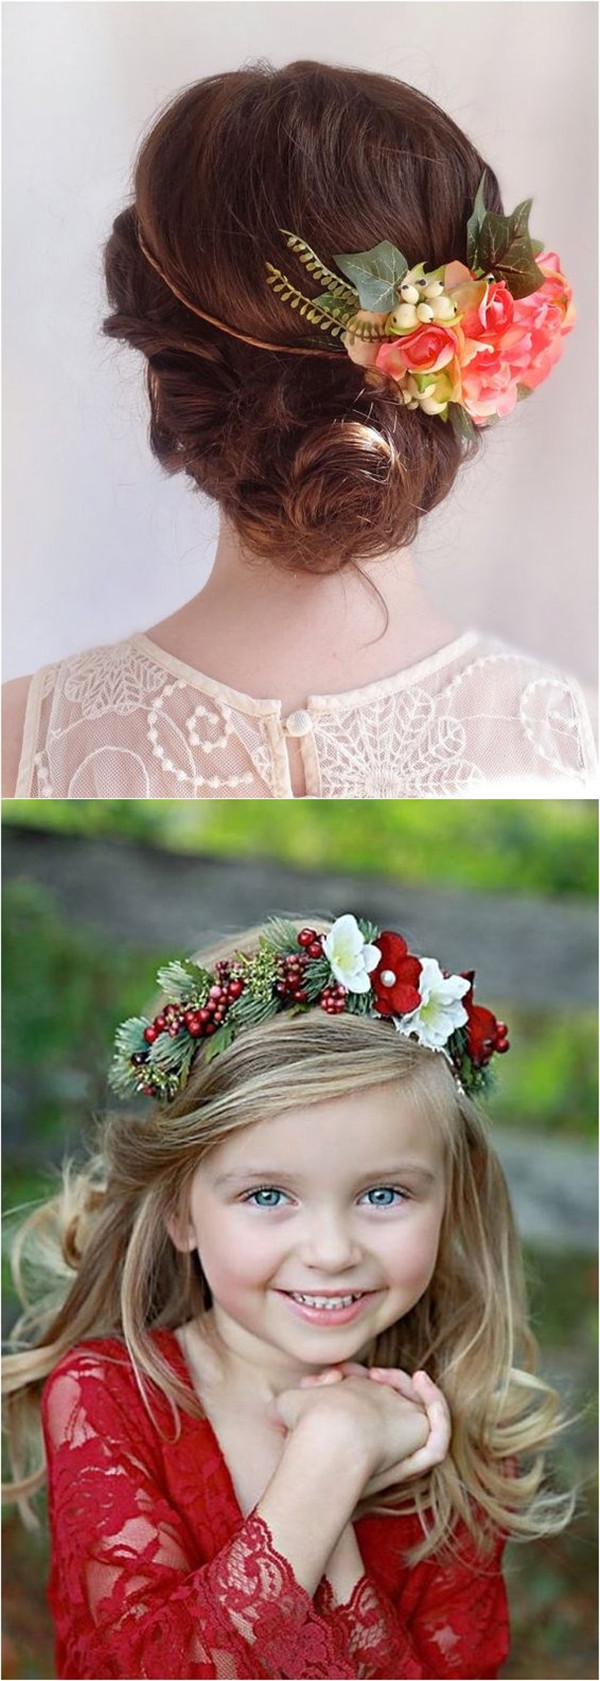 Red berries and green leaves Hairpieces